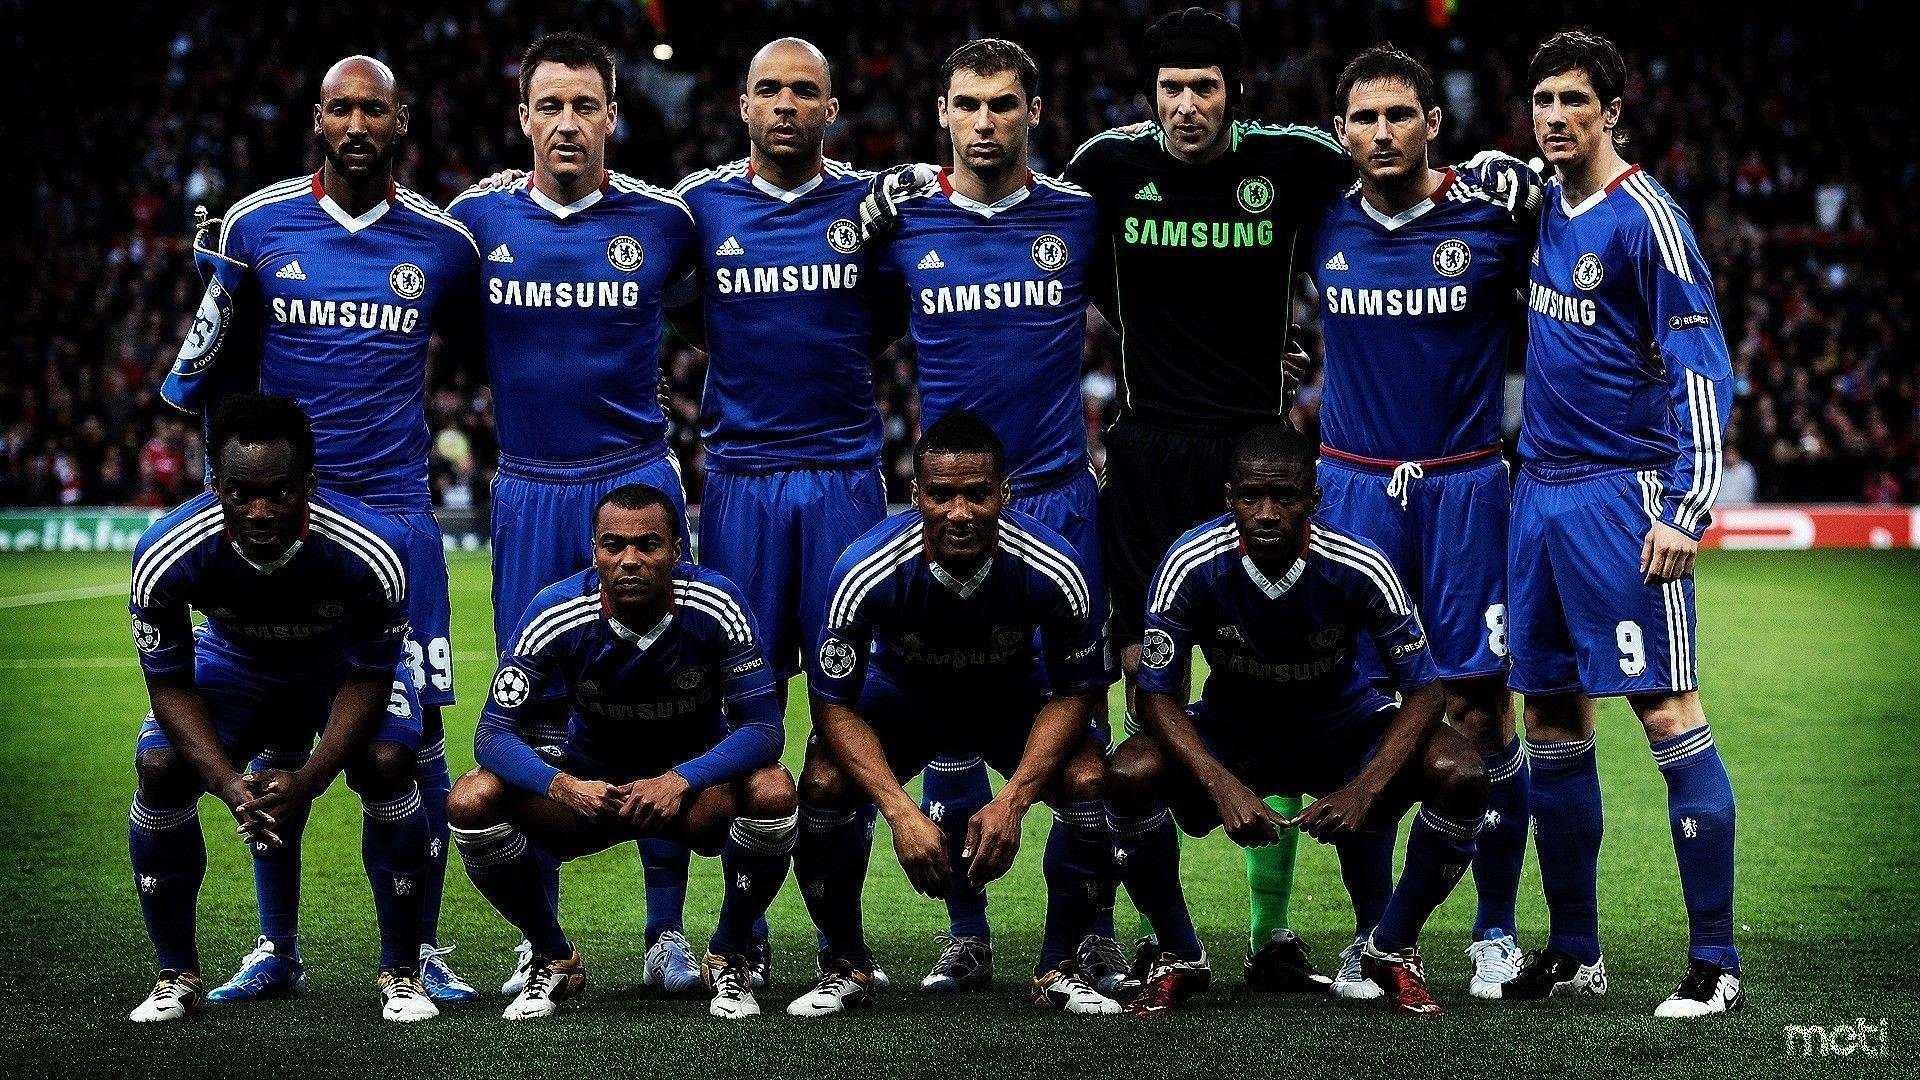 Chelsea football wallpapers in HD - English soccer club from London